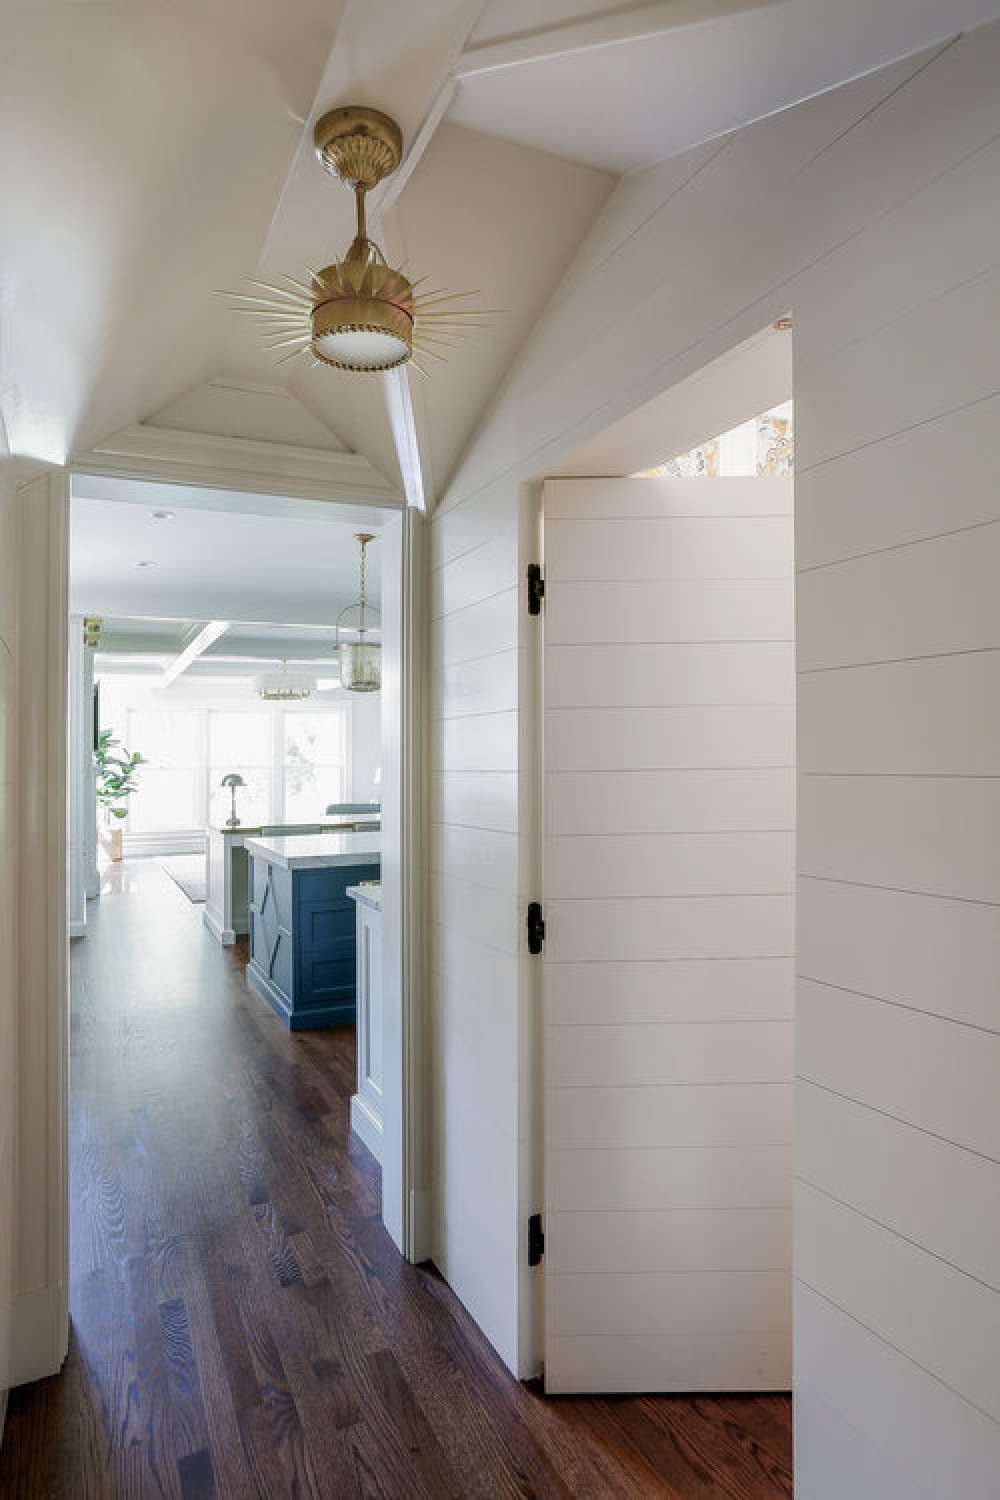 Classic style in a hallway with white shiplap and custom millwork by Edward Deegan Architects.